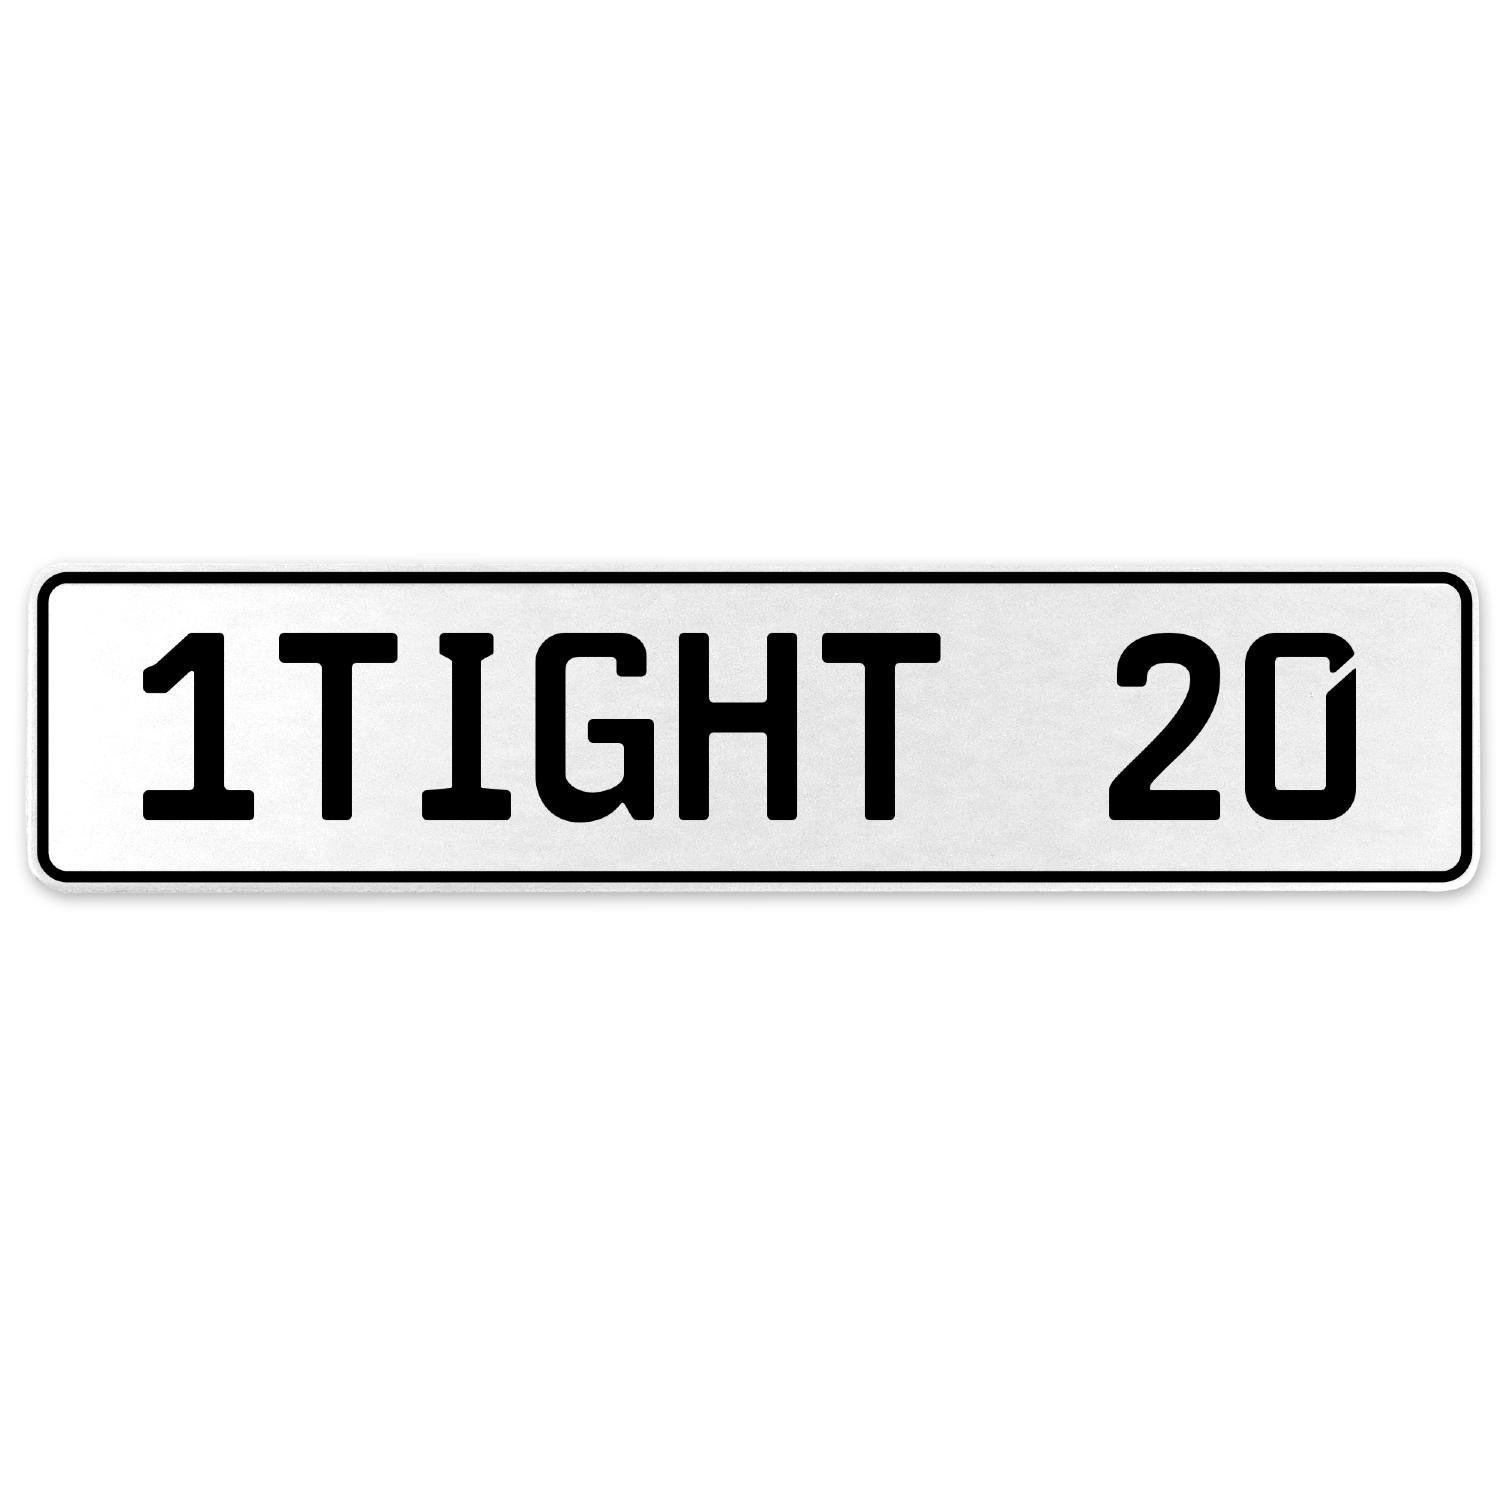 Vintage Parts 554815 1TIGHT 20 White Stamped Aluminum European License Plate